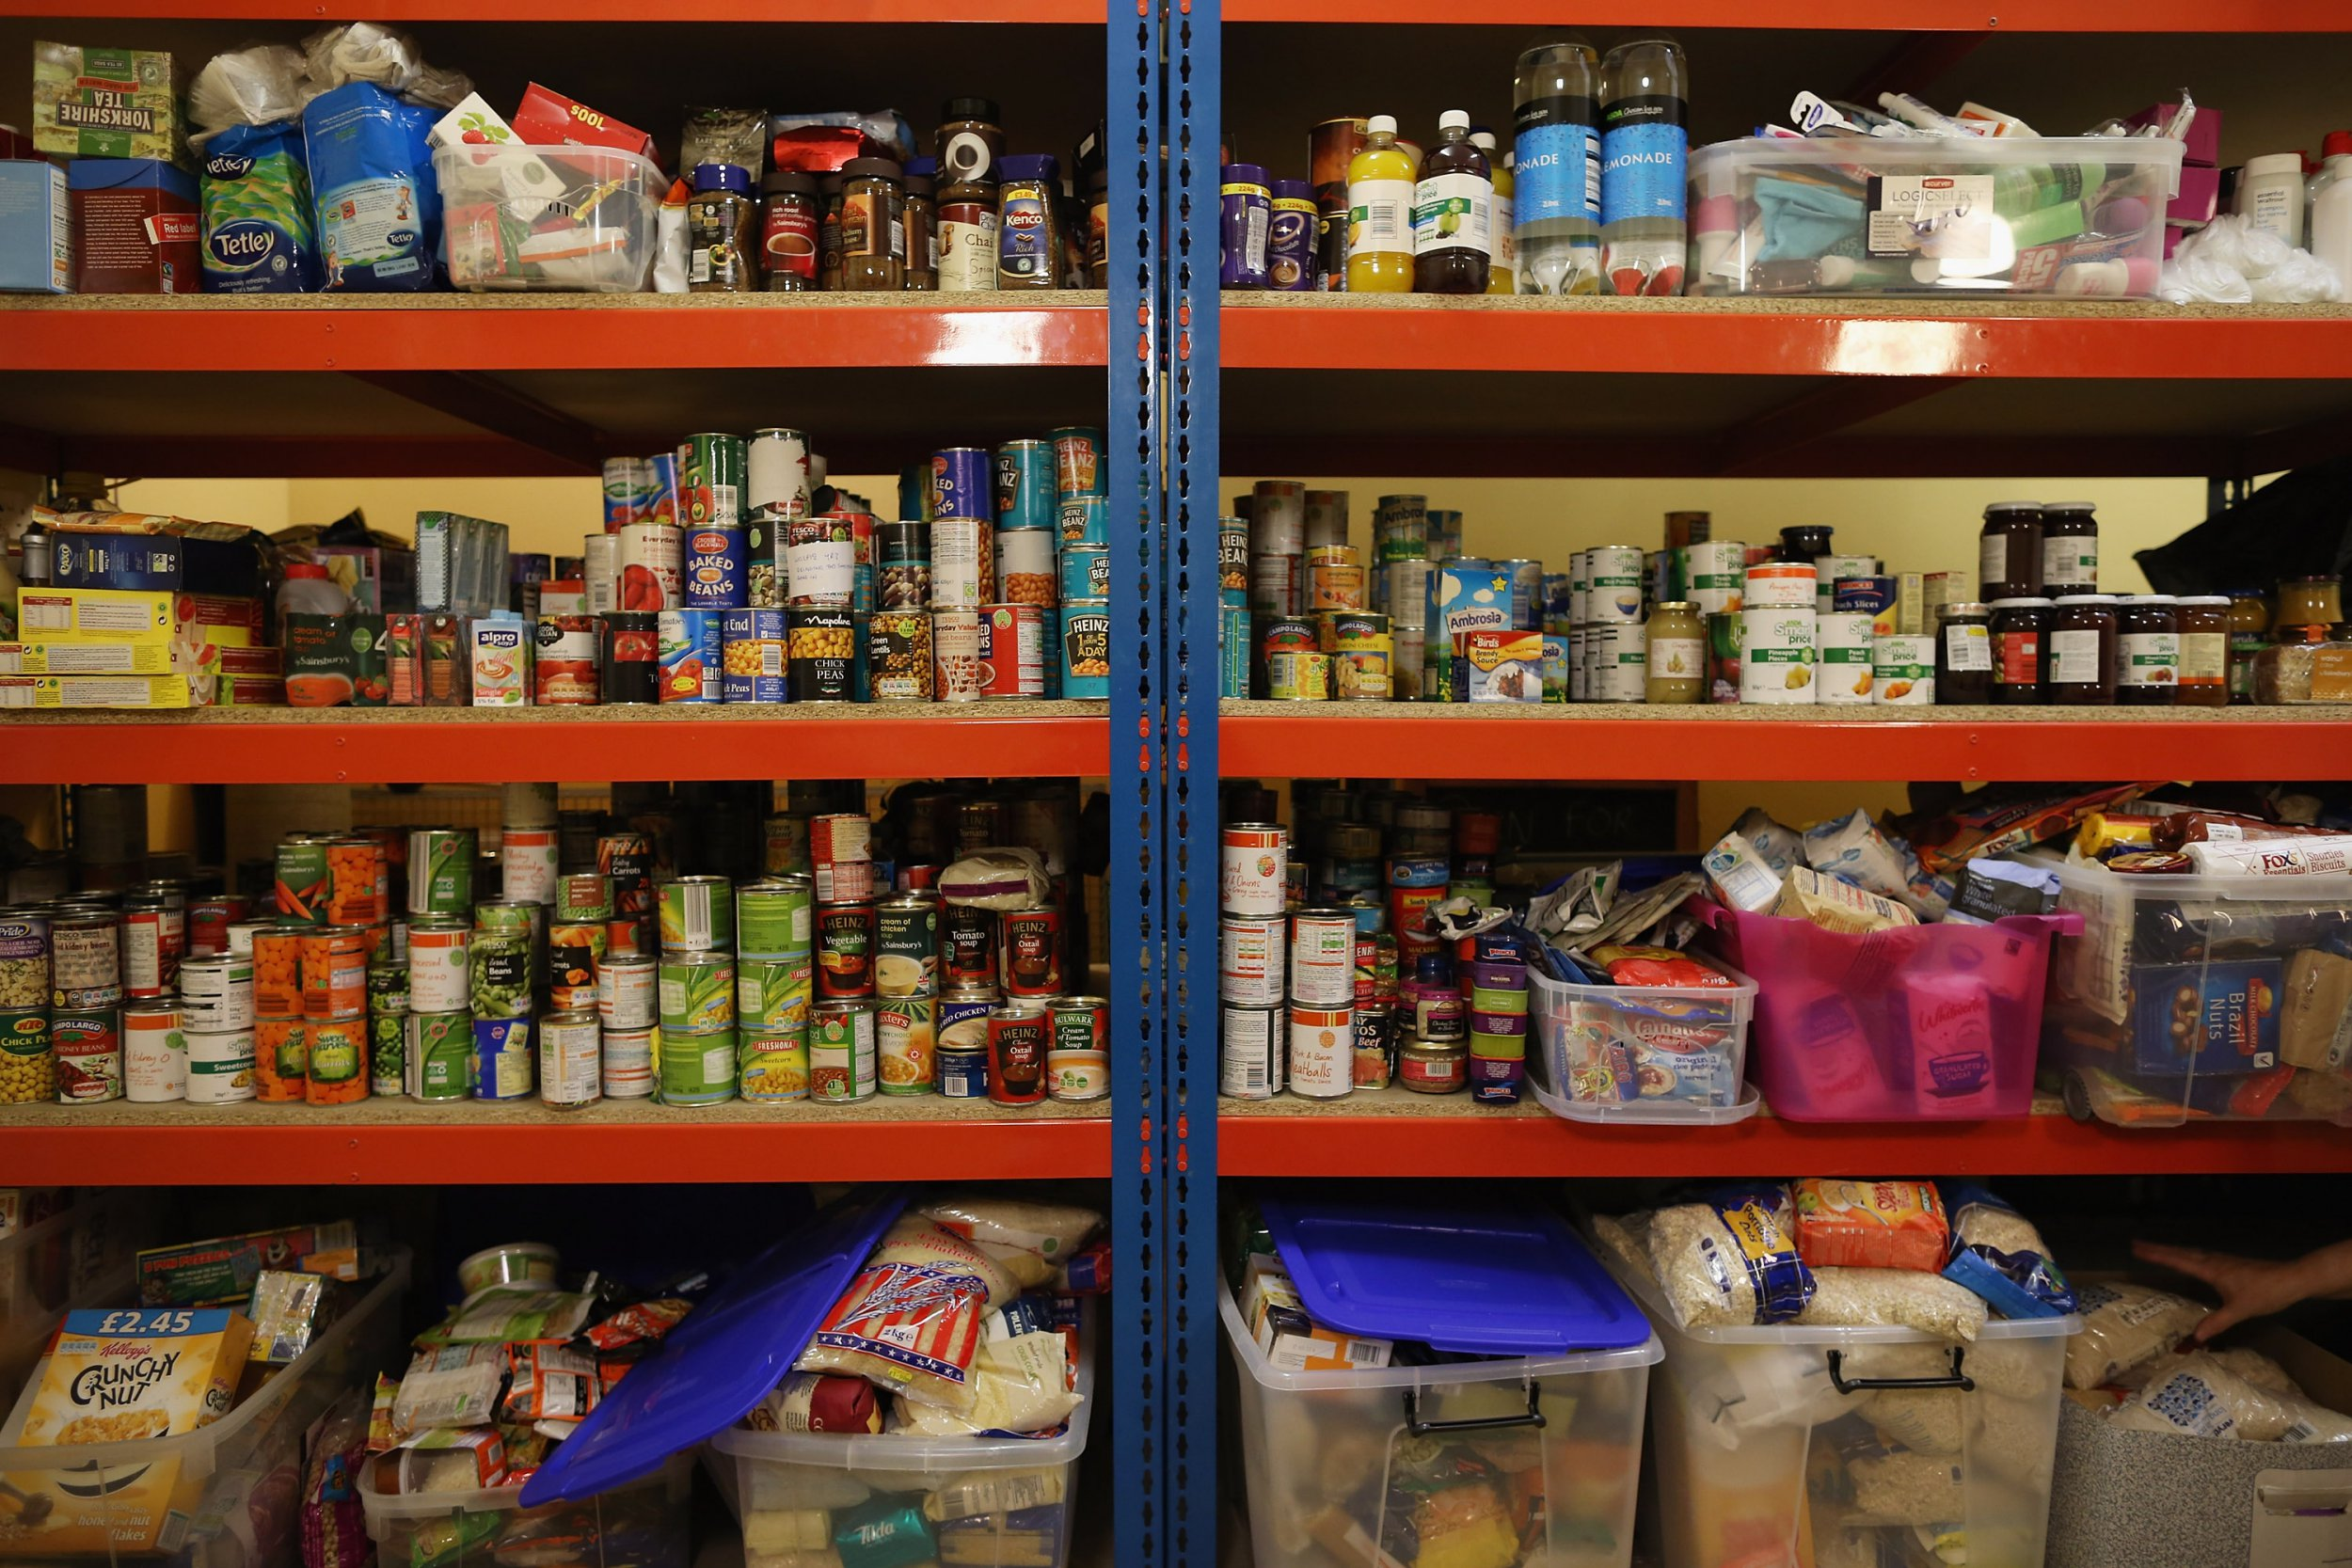 LONDON, ENGLAND - OCTOBER 23: Food is stacked on shelving at a Food Bank depot at St. Paul's Church in Brixton on October 23, 2012 in London, England. The need for food banks has increased with around three depots opening across the UK each week. The Trussell Trust, the charity running food banks, have said that record numbers of people have required emergency food over the last six months and they expect to feed 200,000 over the next year. Vulnerable people of all ages, nationalities and backgrounds, many of whom have fallen out of the benefit system and have no other way to feed themselves and their families, are using food banks. (Photo by Dan Kitwood/Getty Images)